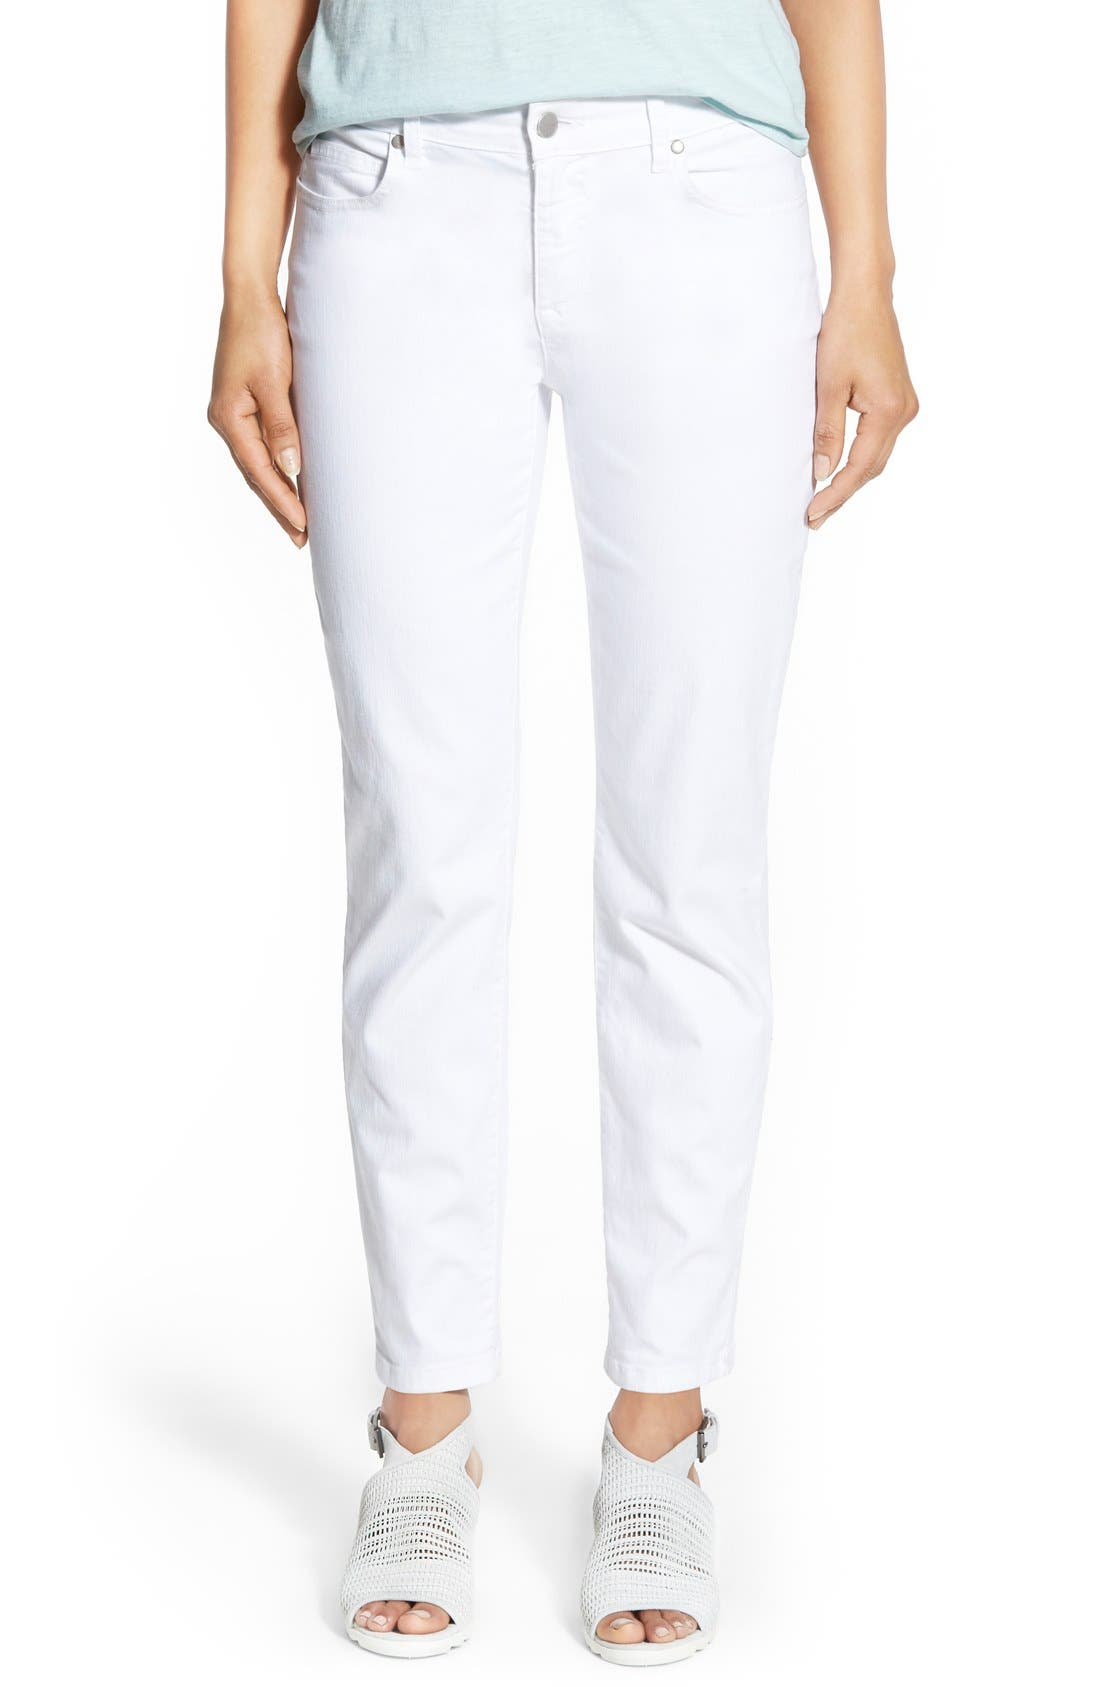 Main Image - Eileen Fisher Stretch Organic Cotton Skinny Jeans (White) (Plus Size)